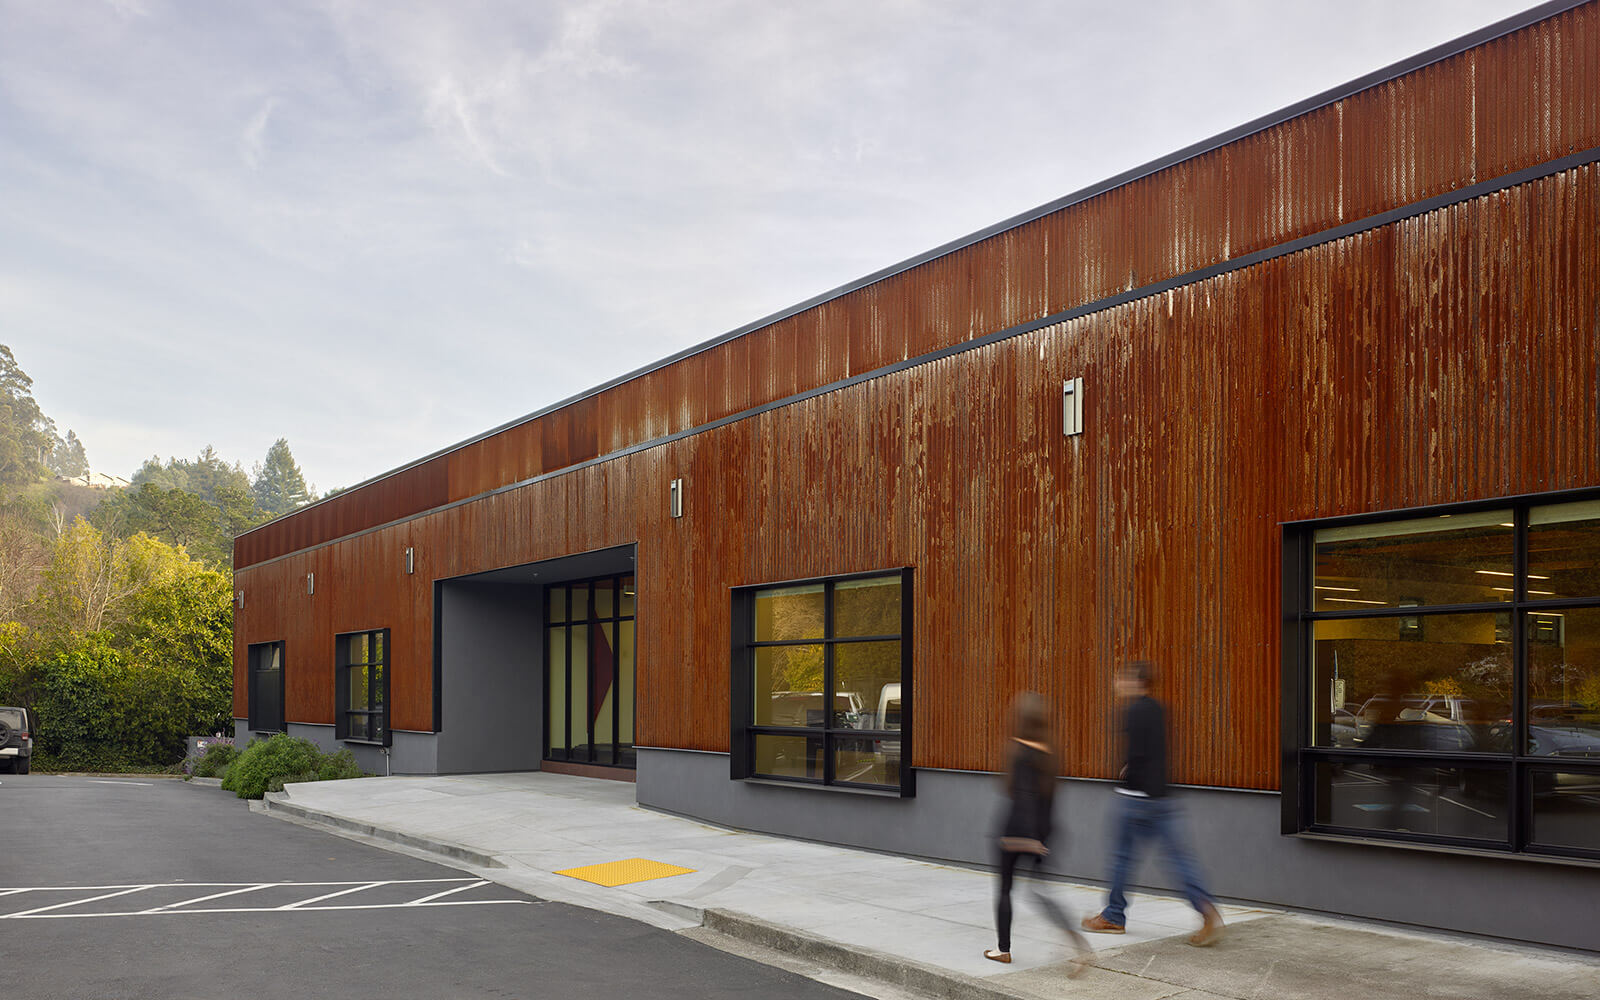 studio vara workplace redwood highway exterior entry